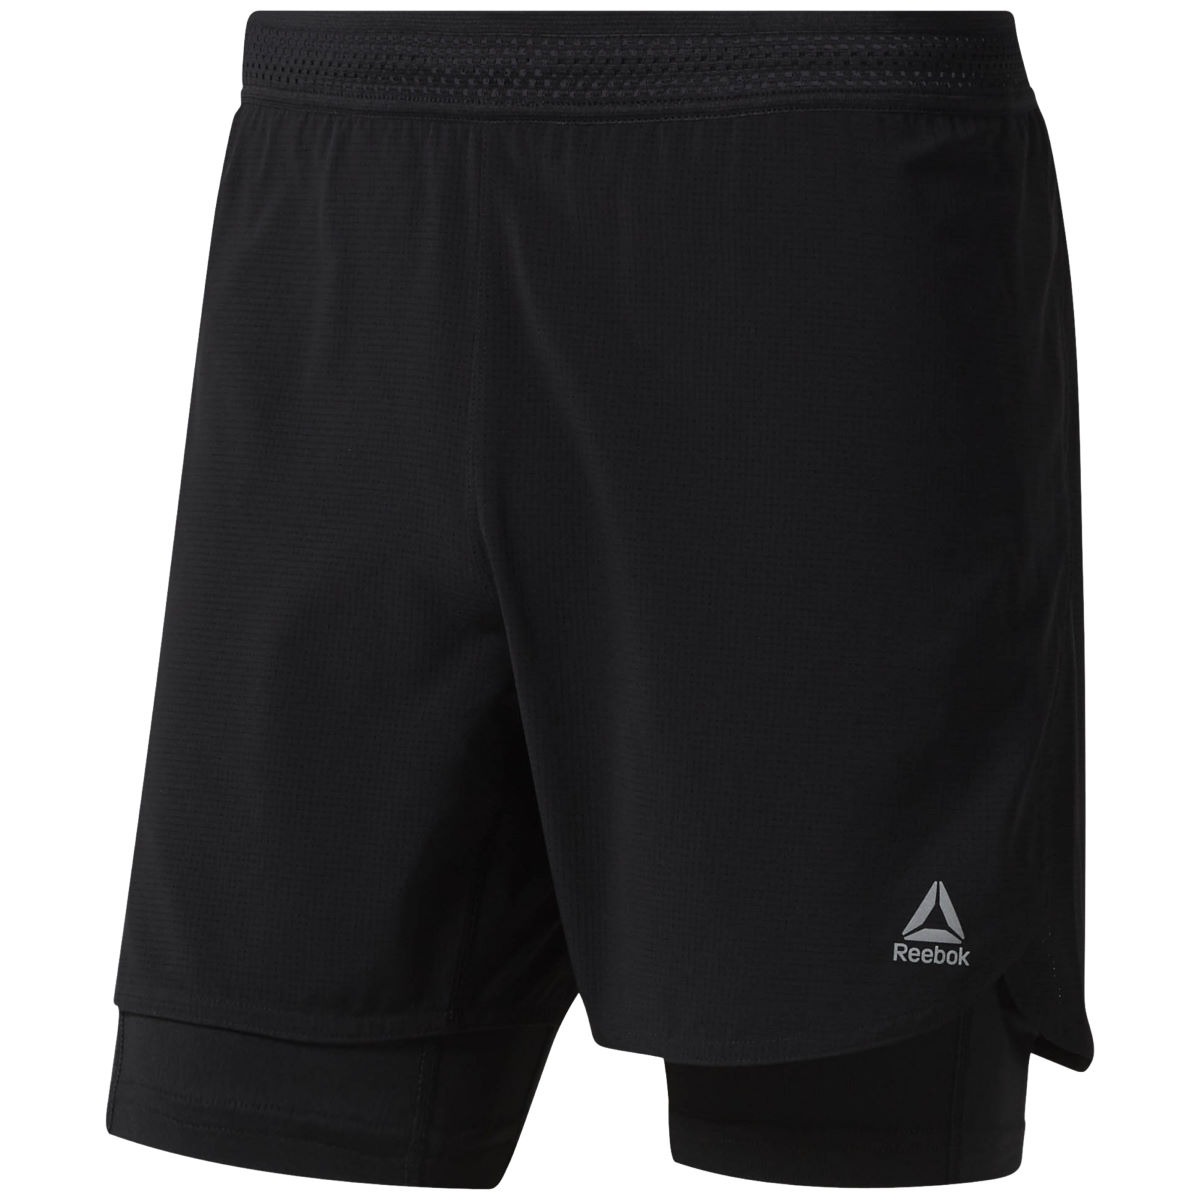 Reebok Reebok OSR Epic 2-in-1 Run Short   Shorts